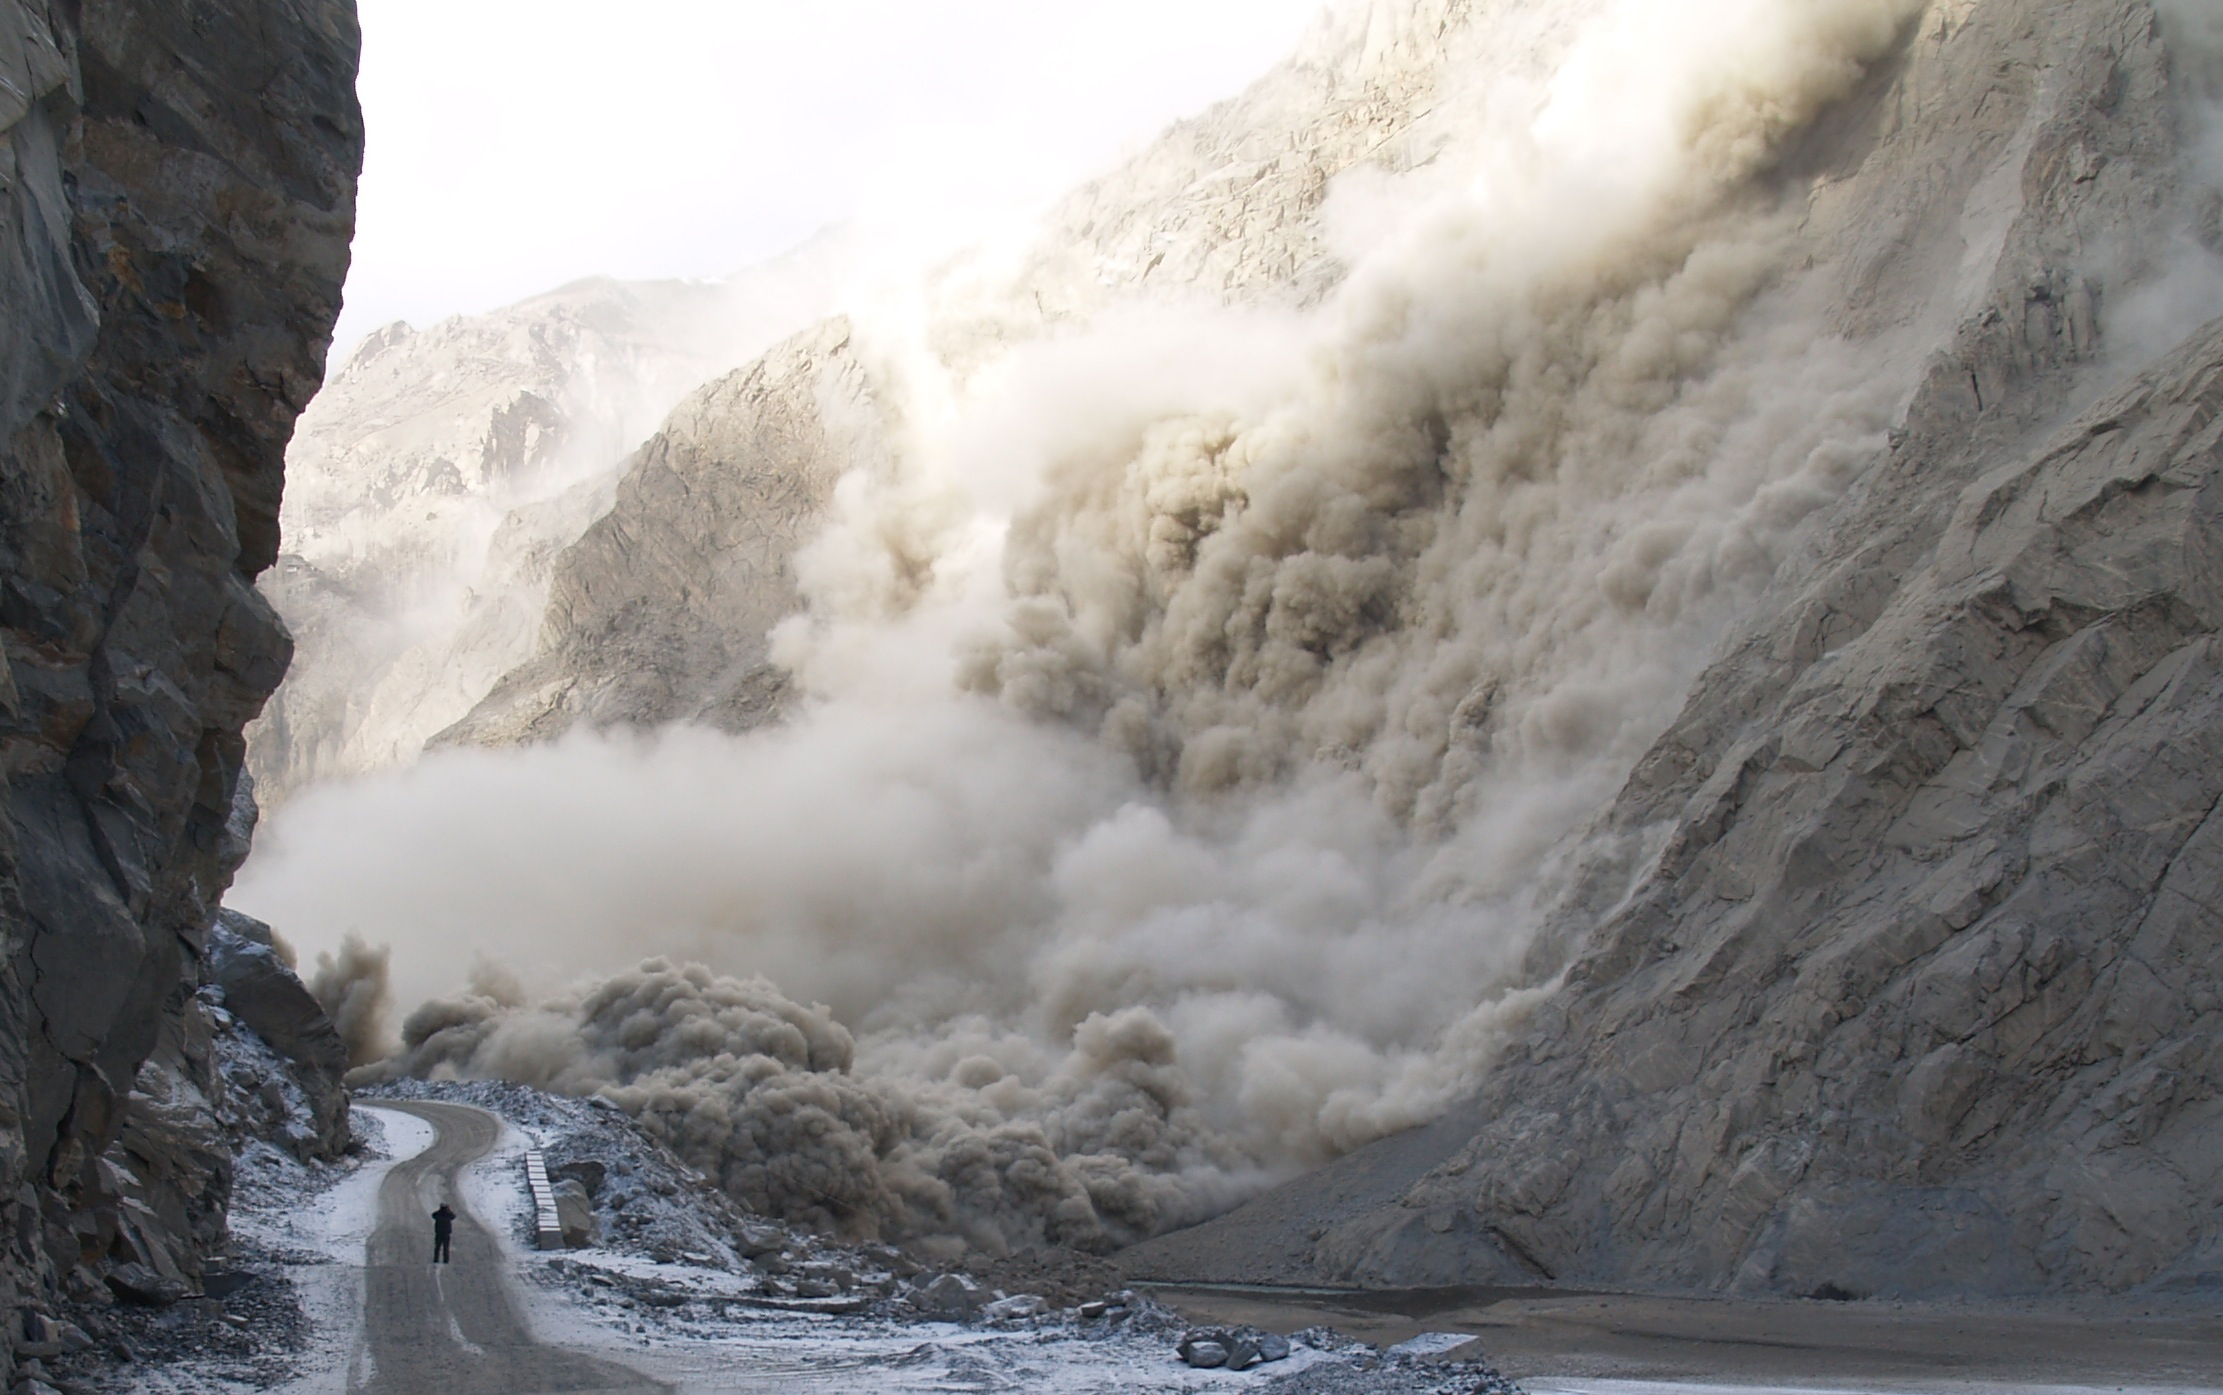 Continuing concerns about the landslide dam at attabad in hunza